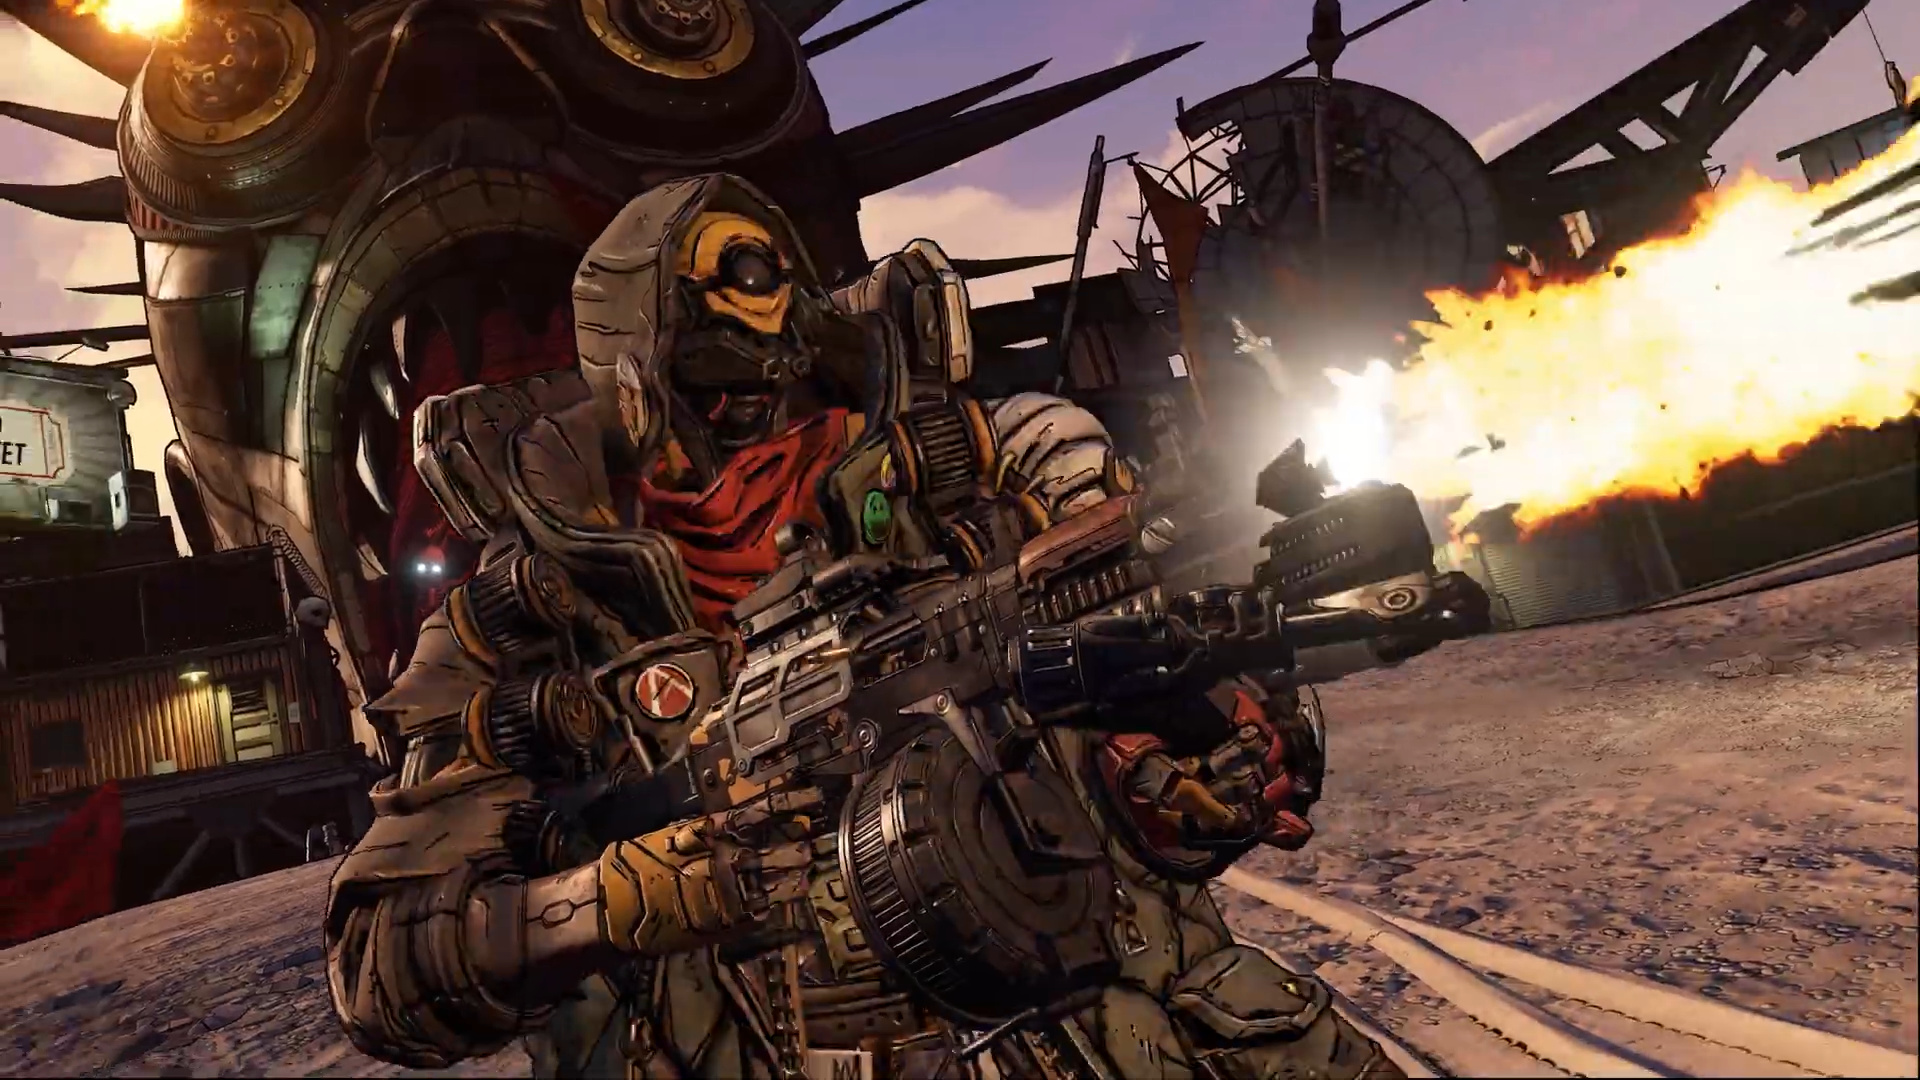 E3 2019: Borderlands 3 Gunplay Is Supposed to Be Massively Improved